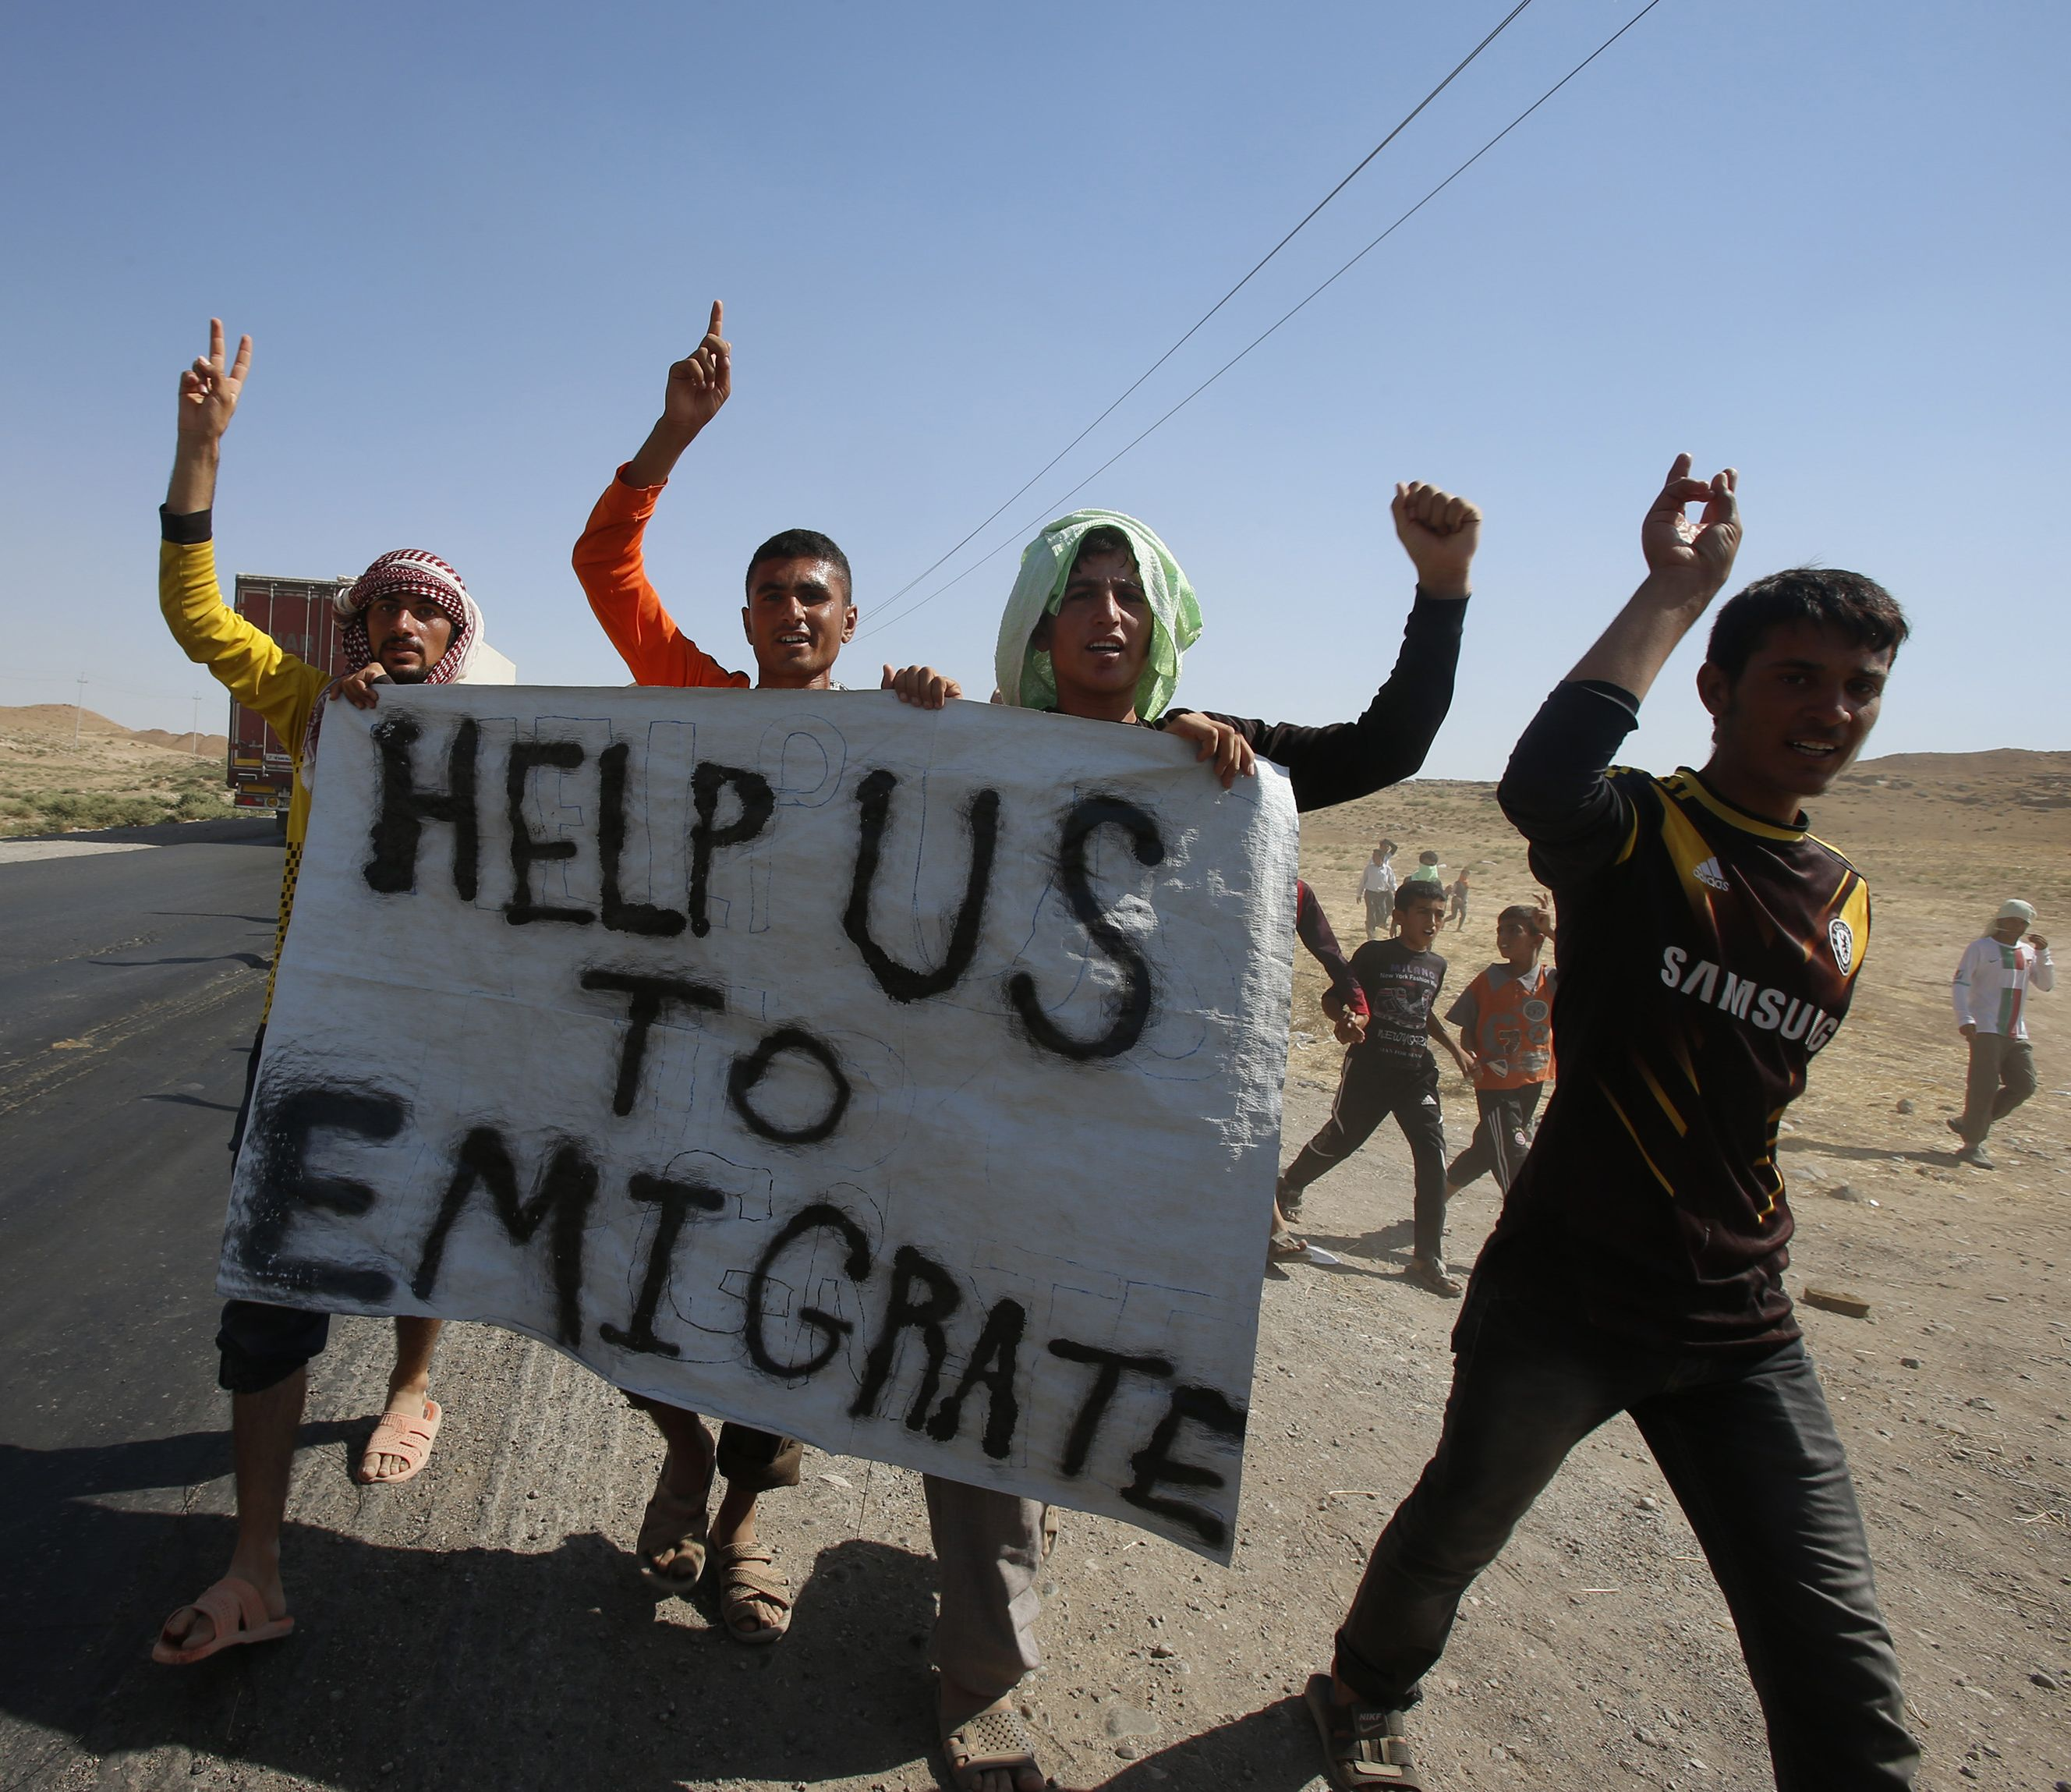 Displaced people from the minority Yazidi sect, who fled the violence in the Iraqi town of Sinjar, hold a banner as they take part in a demonstration at the Iraqi-Syrian border crossing in Fishkhabour, Dohuk province.